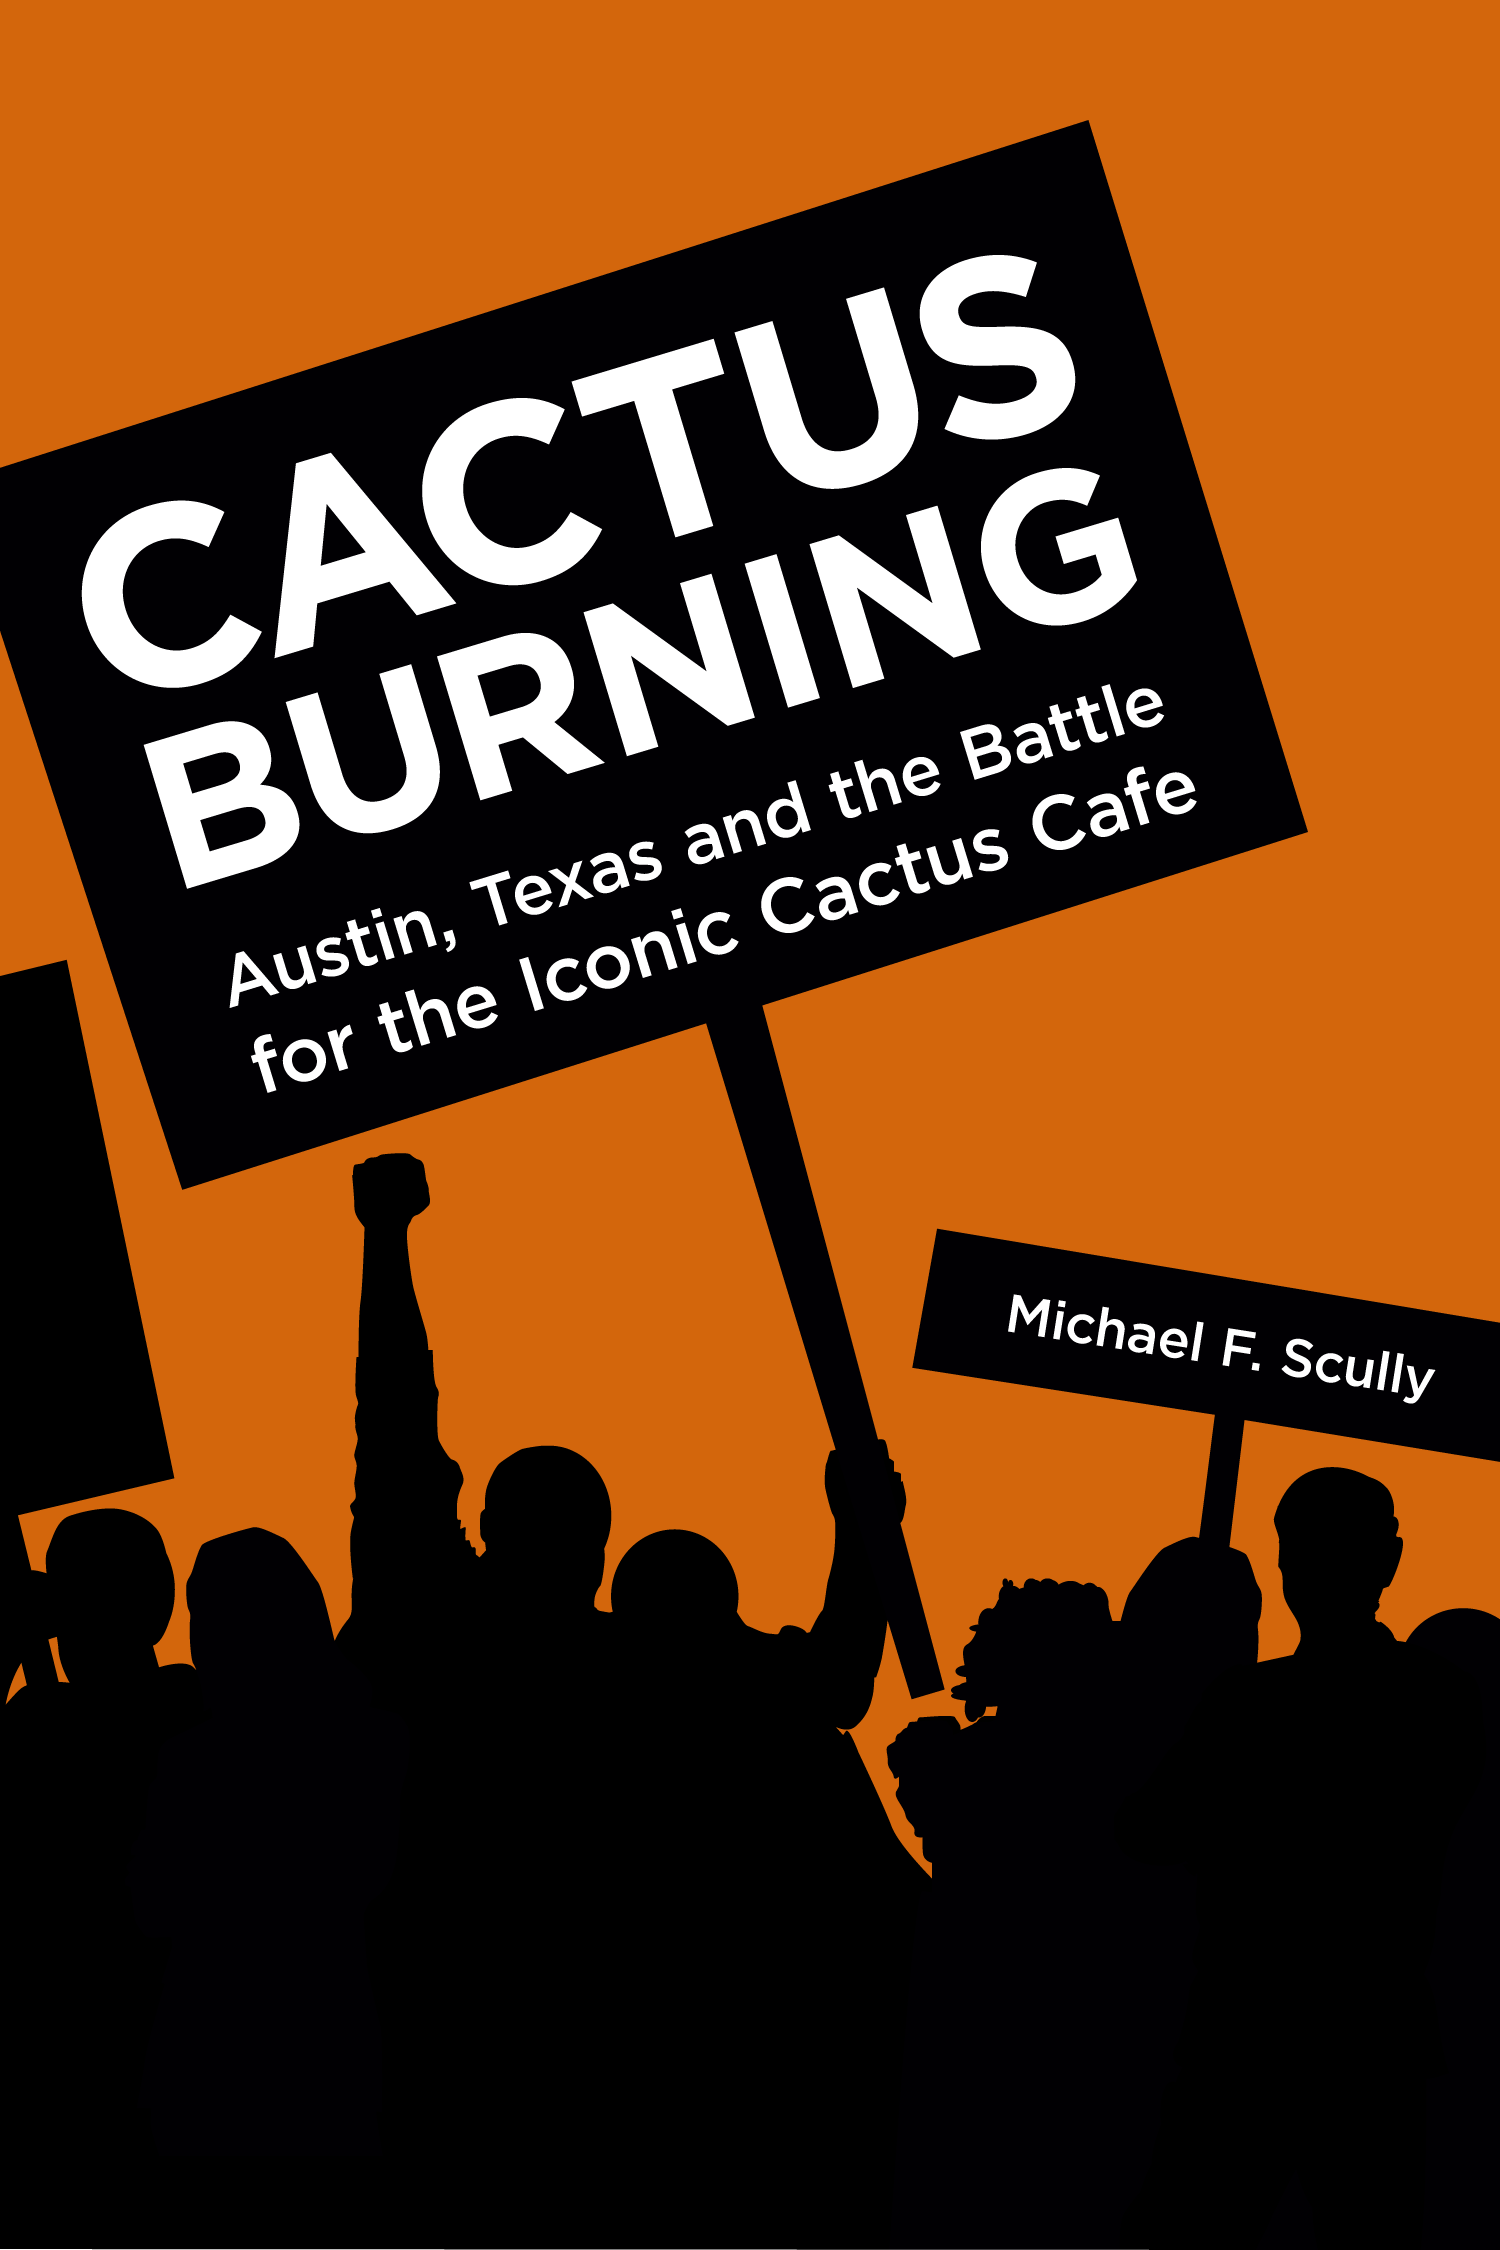 cactusBurning_cover_mm009.png